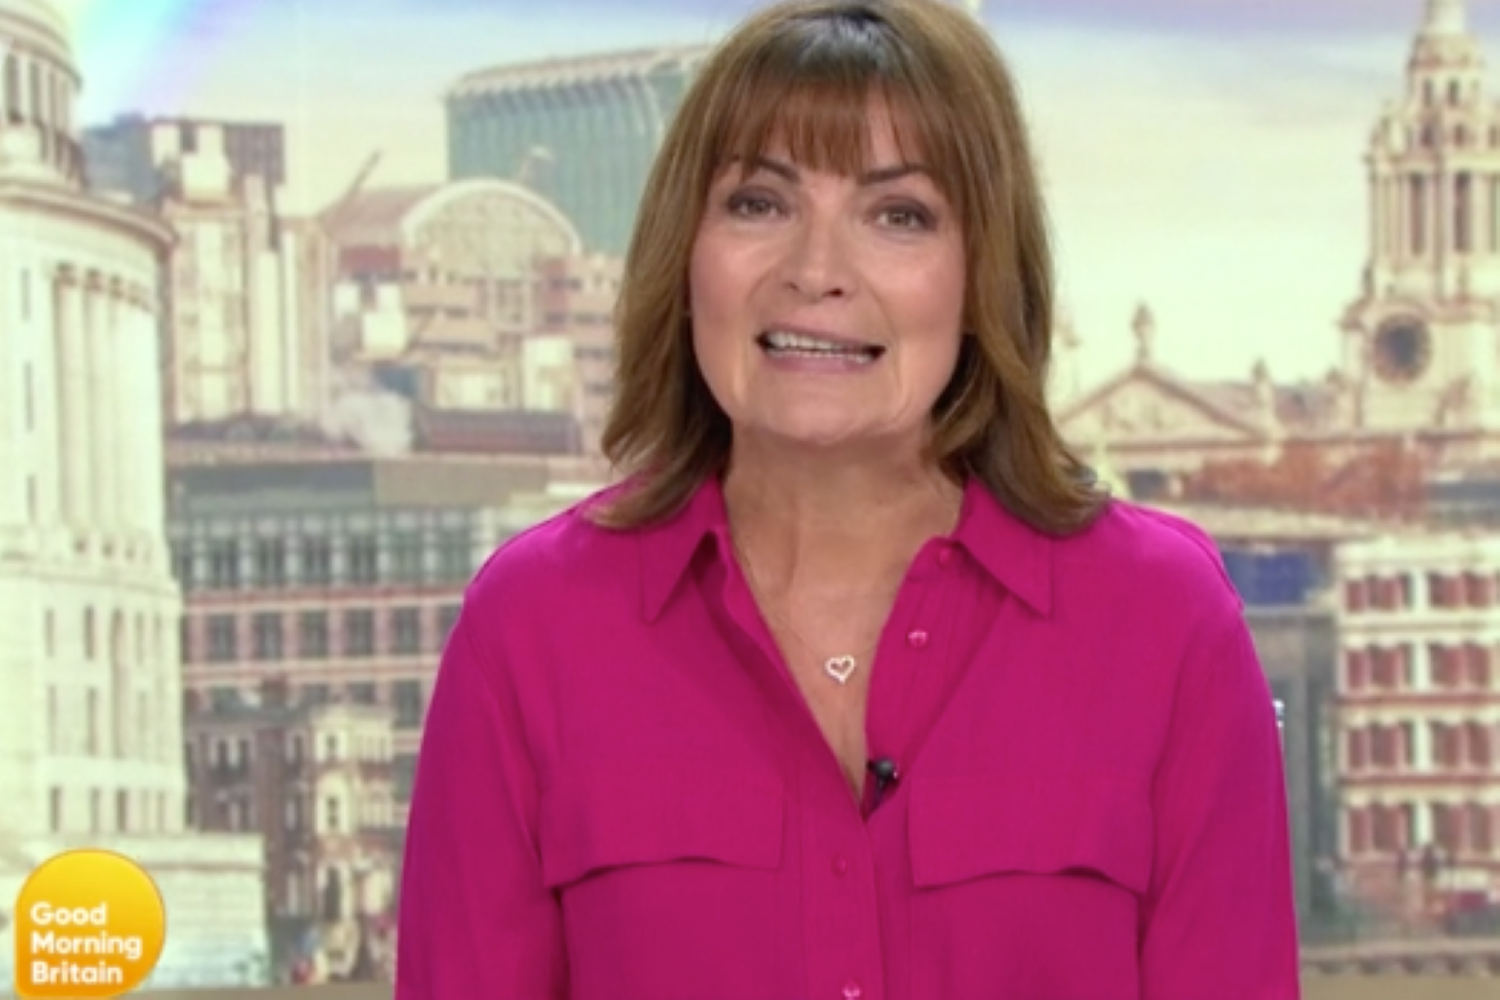 Lorraine Kelly reveals why she's taken her wedding ring off on Good Morning Britain